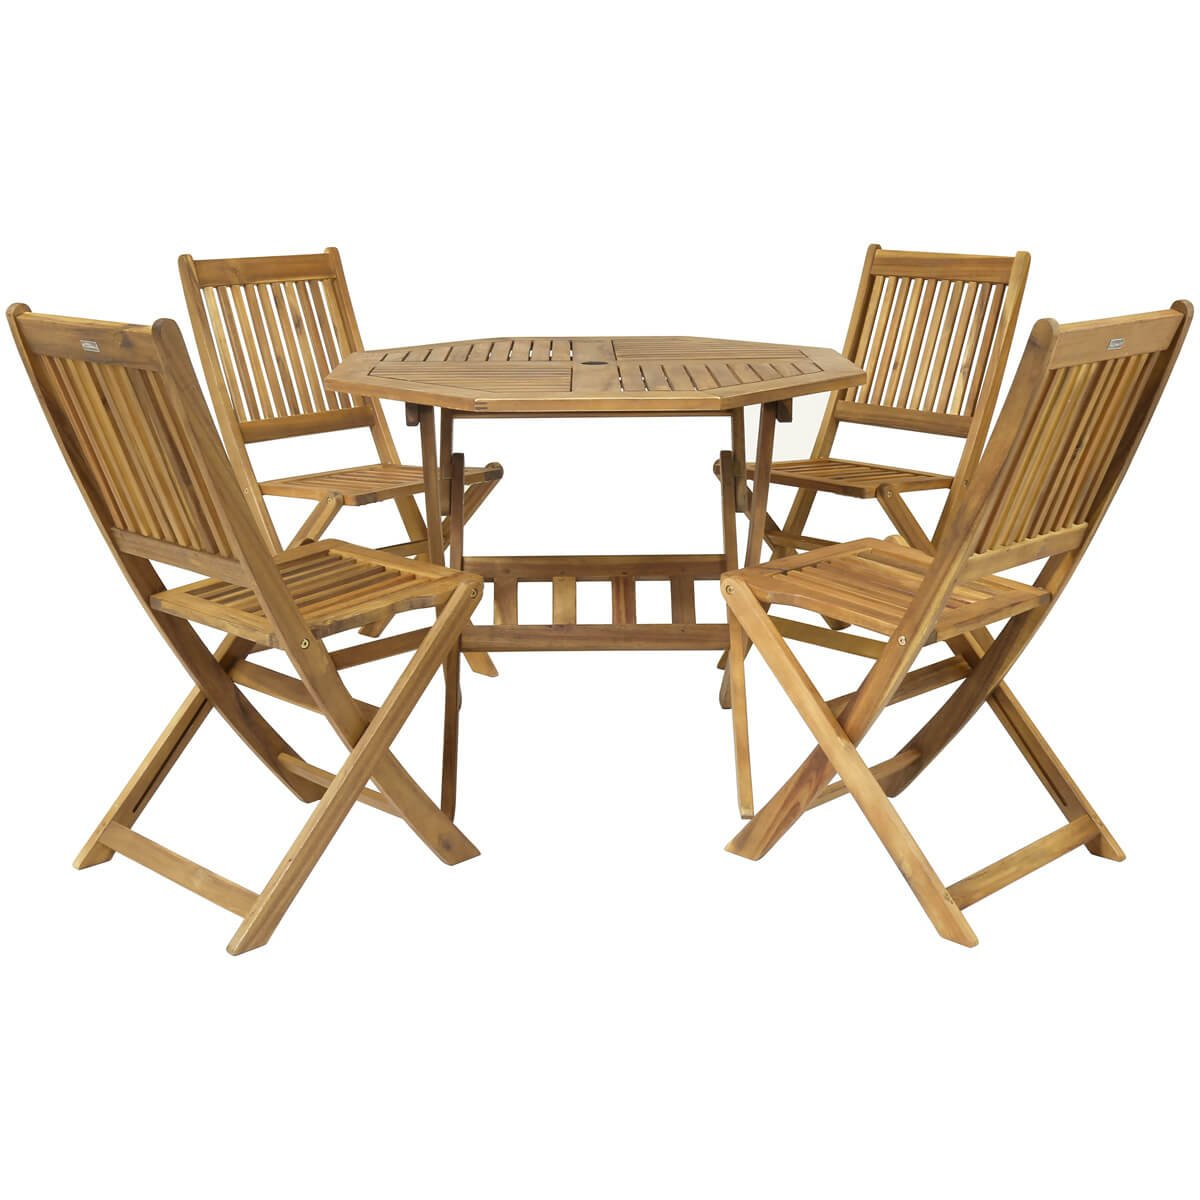 Charles Bentley Garden Wooden Furniture Patio Octagonal Table   4 Chairs  5Pc Set  Amazon co uk  Garden   Outdoors. Charles Bentley Garden Wooden Furniture Patio Octagonal Table   4